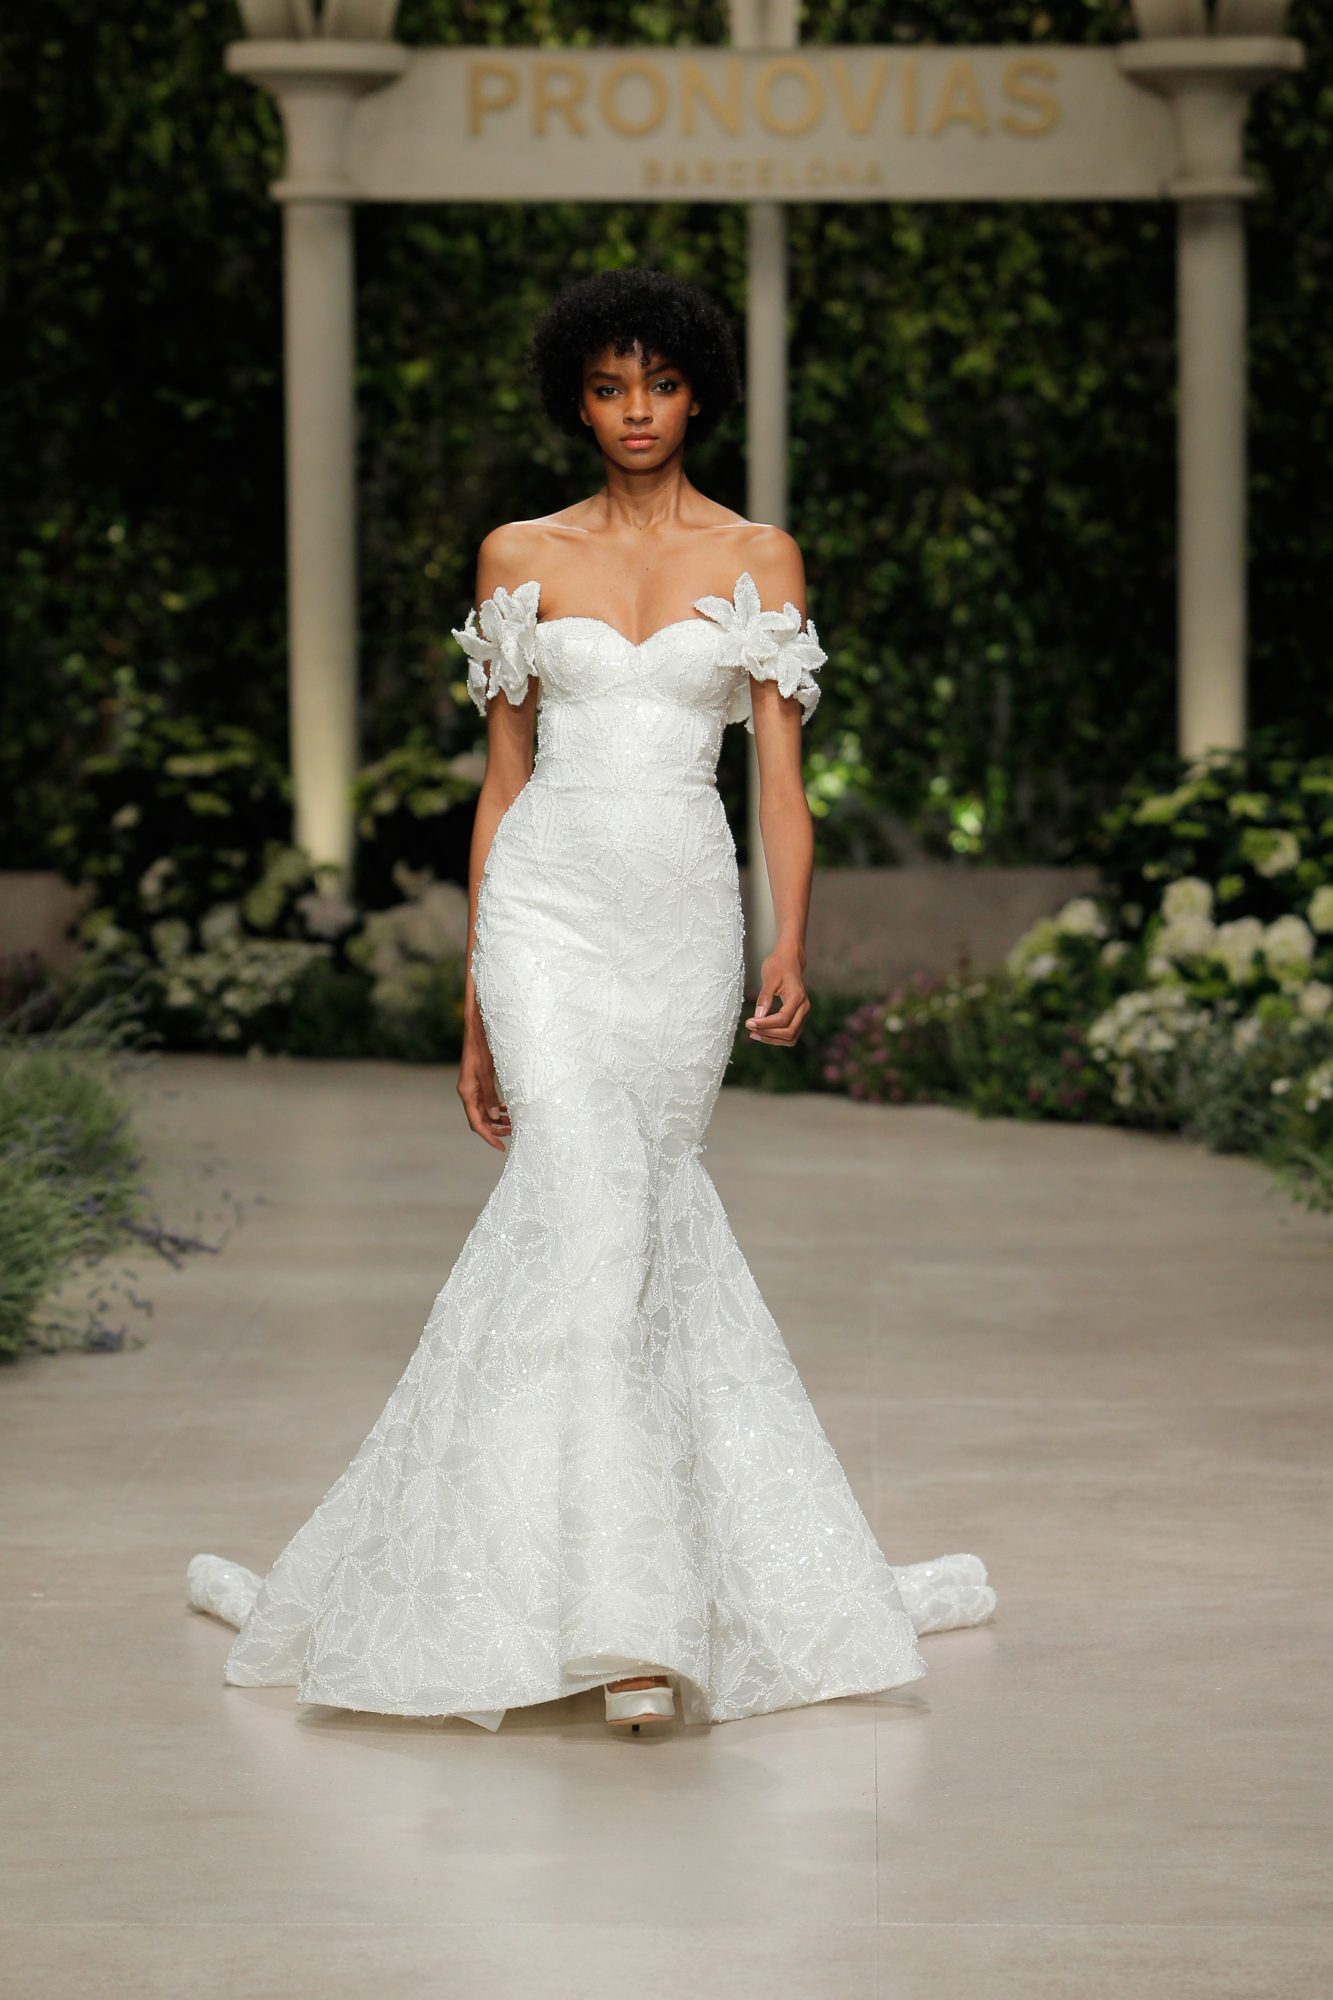 Trumpet wedding dress with off-the-shoulder neckline and floral elements